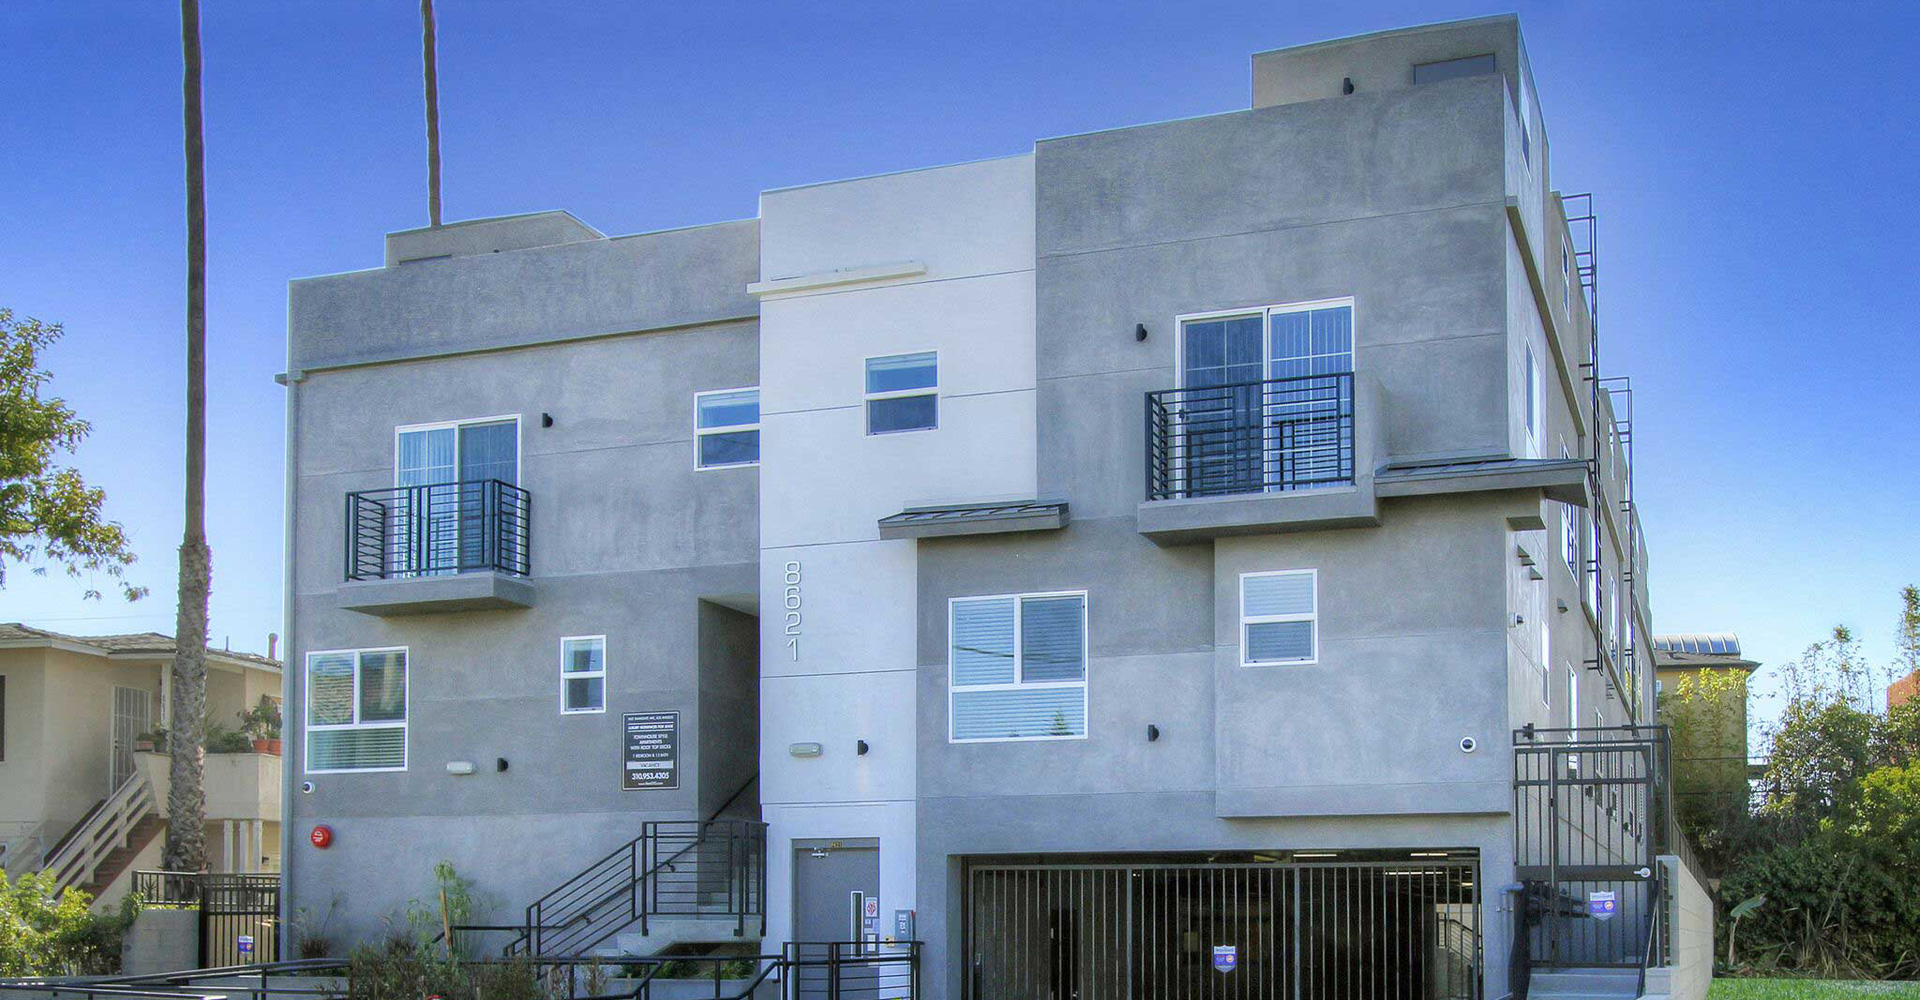 Pet friendly townhome for rent in Hollywood and Koreatown